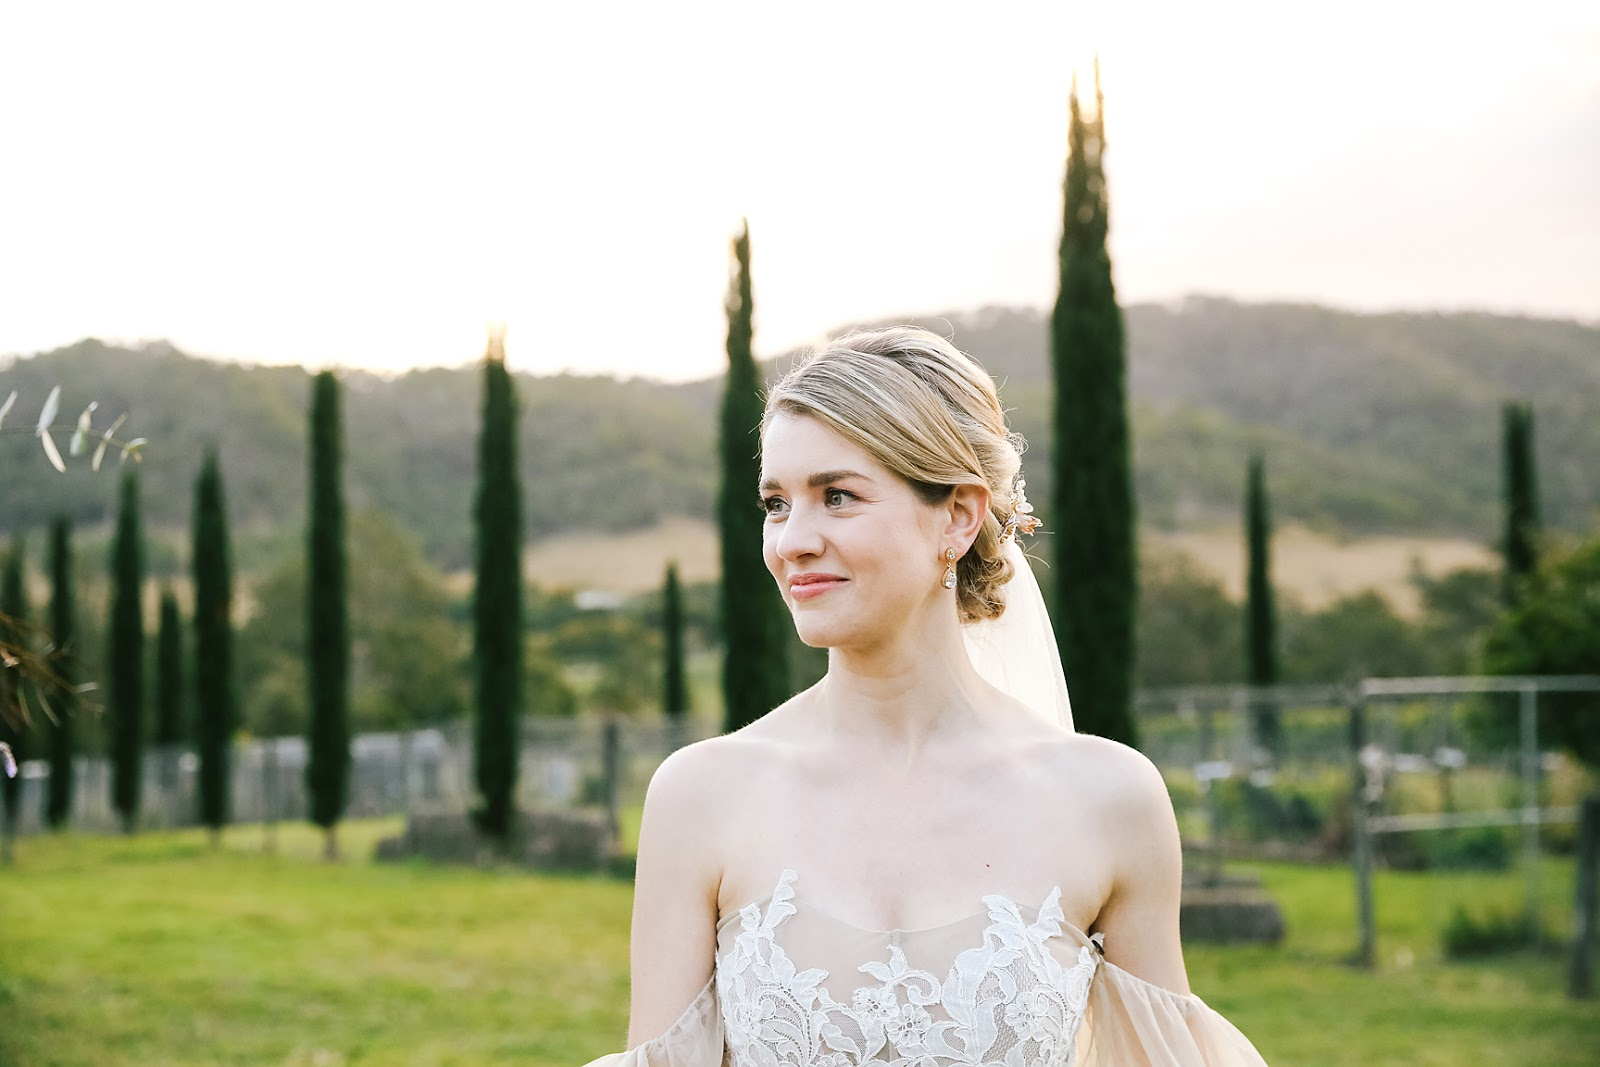 FINDING A PROFESSIONAL: WEDDING MAKEUP & HAIR #covidsafe